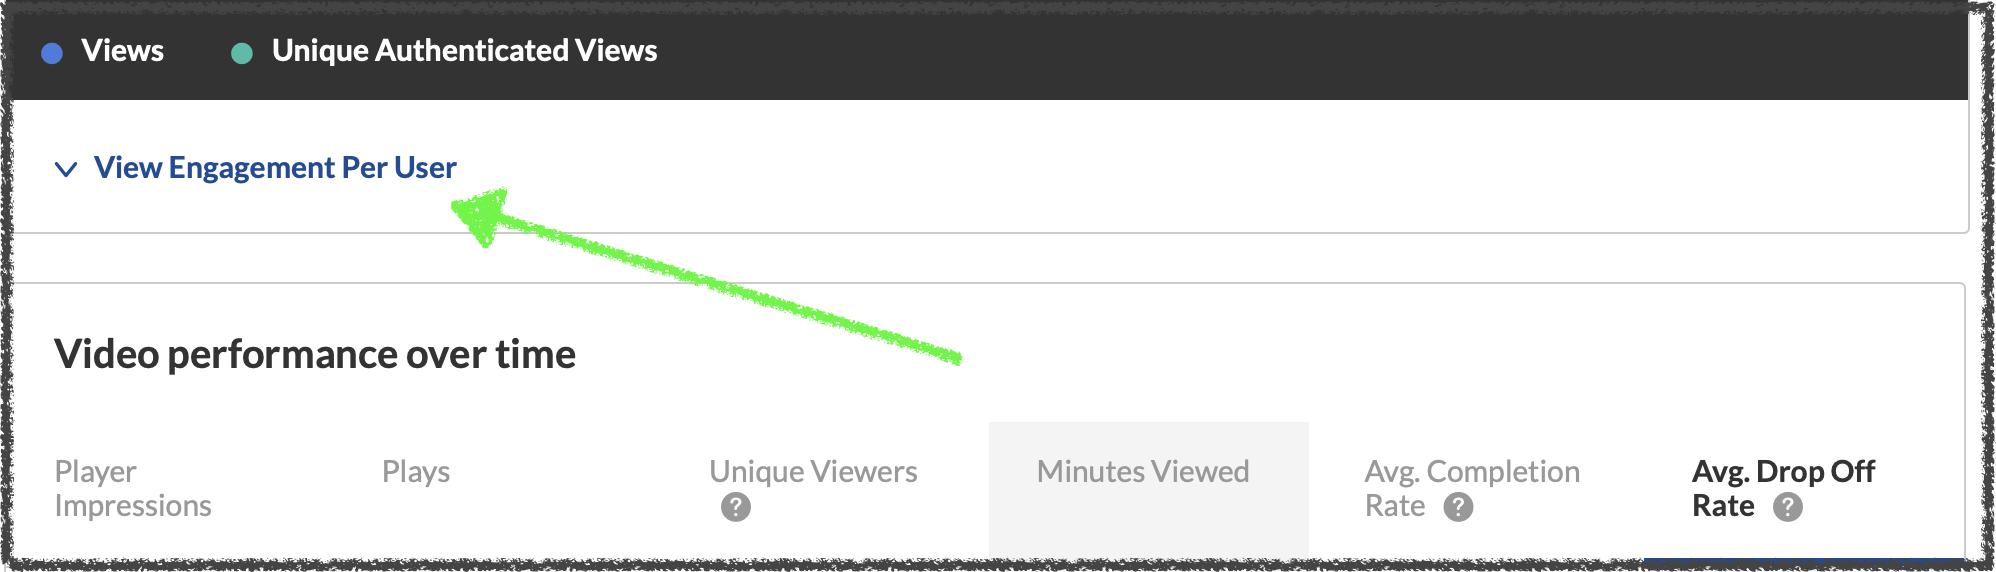 click View engagement by user